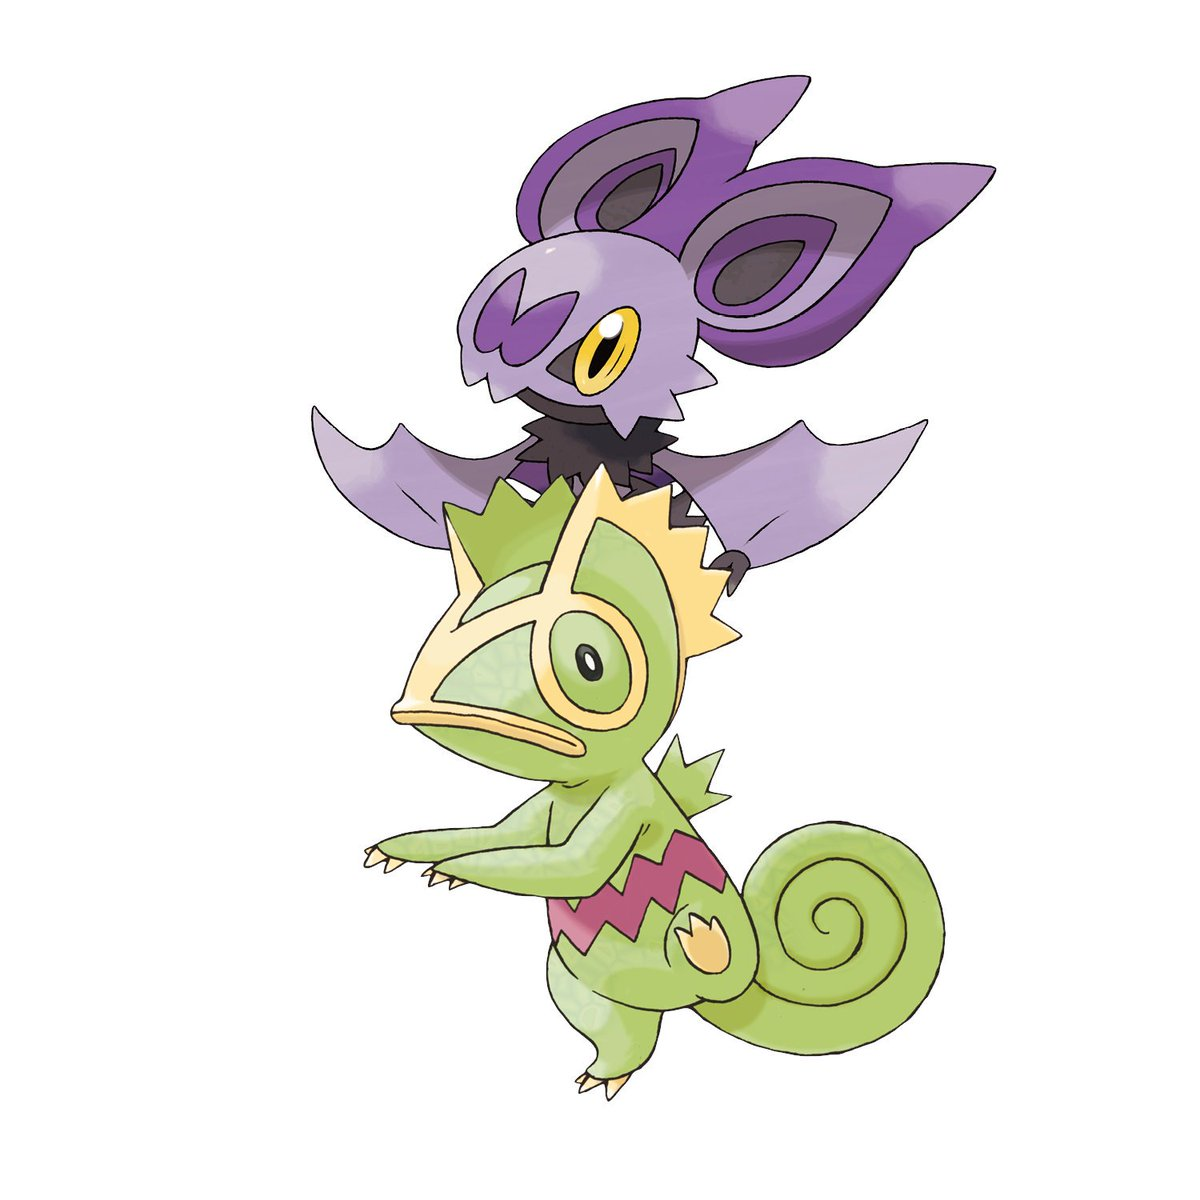 A lizard and a bat, whats up with that? #ThankYouGameFreak 💚💜